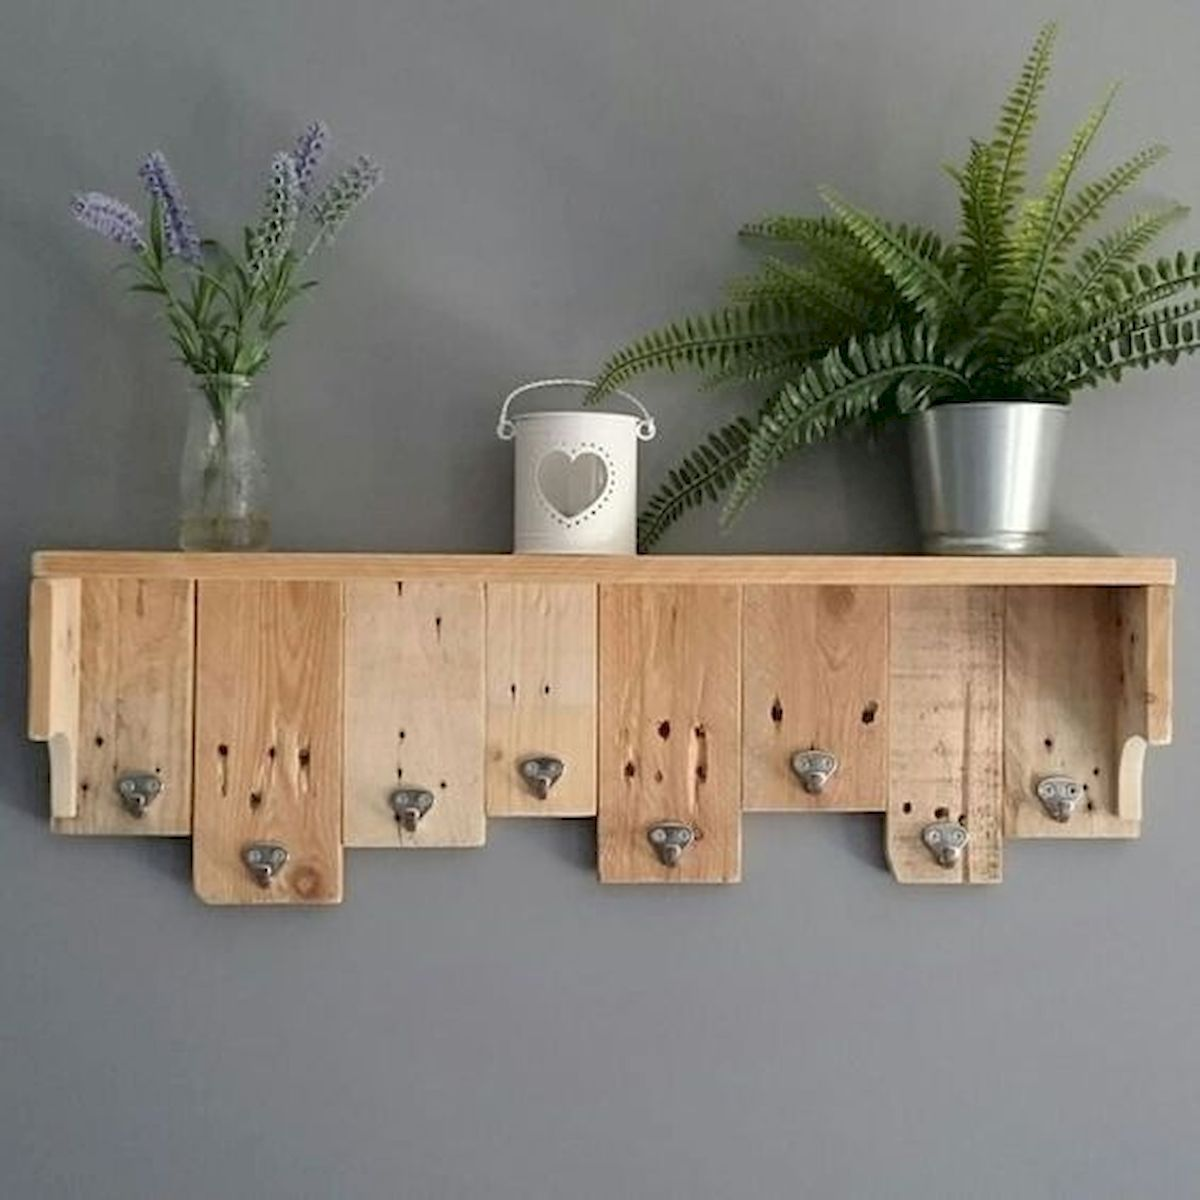 45 Easy Diy Wood Project Furniture Ideas For Small House Diy Wooden Projects Diy Wood Projects Furniture Wood Furniture Diy